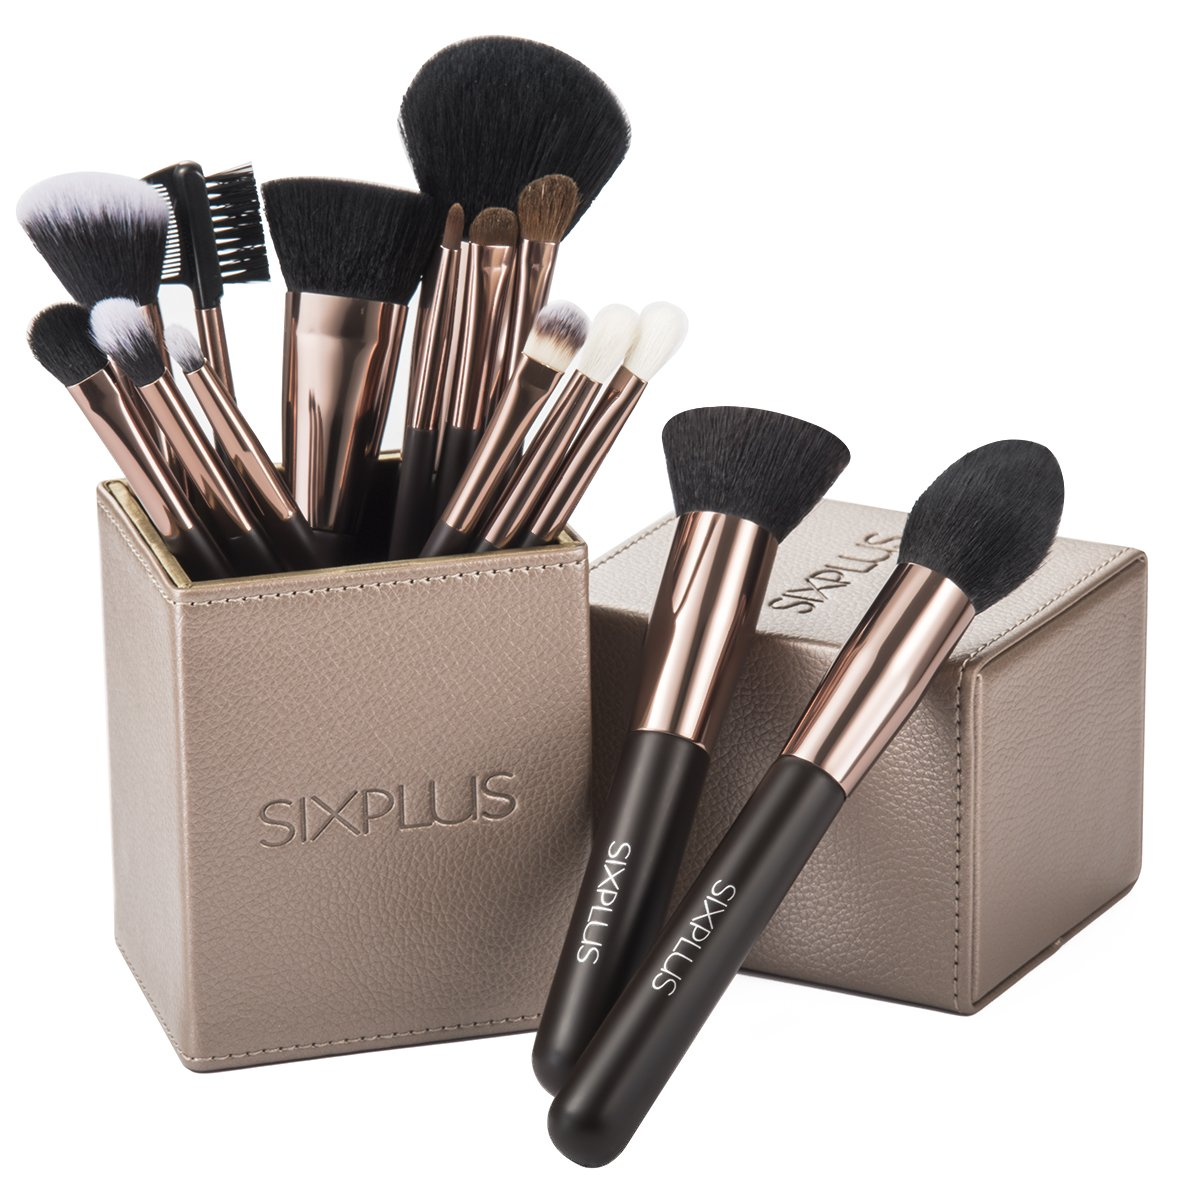 7. SIXPLUS Coffee Makeup Brush Set